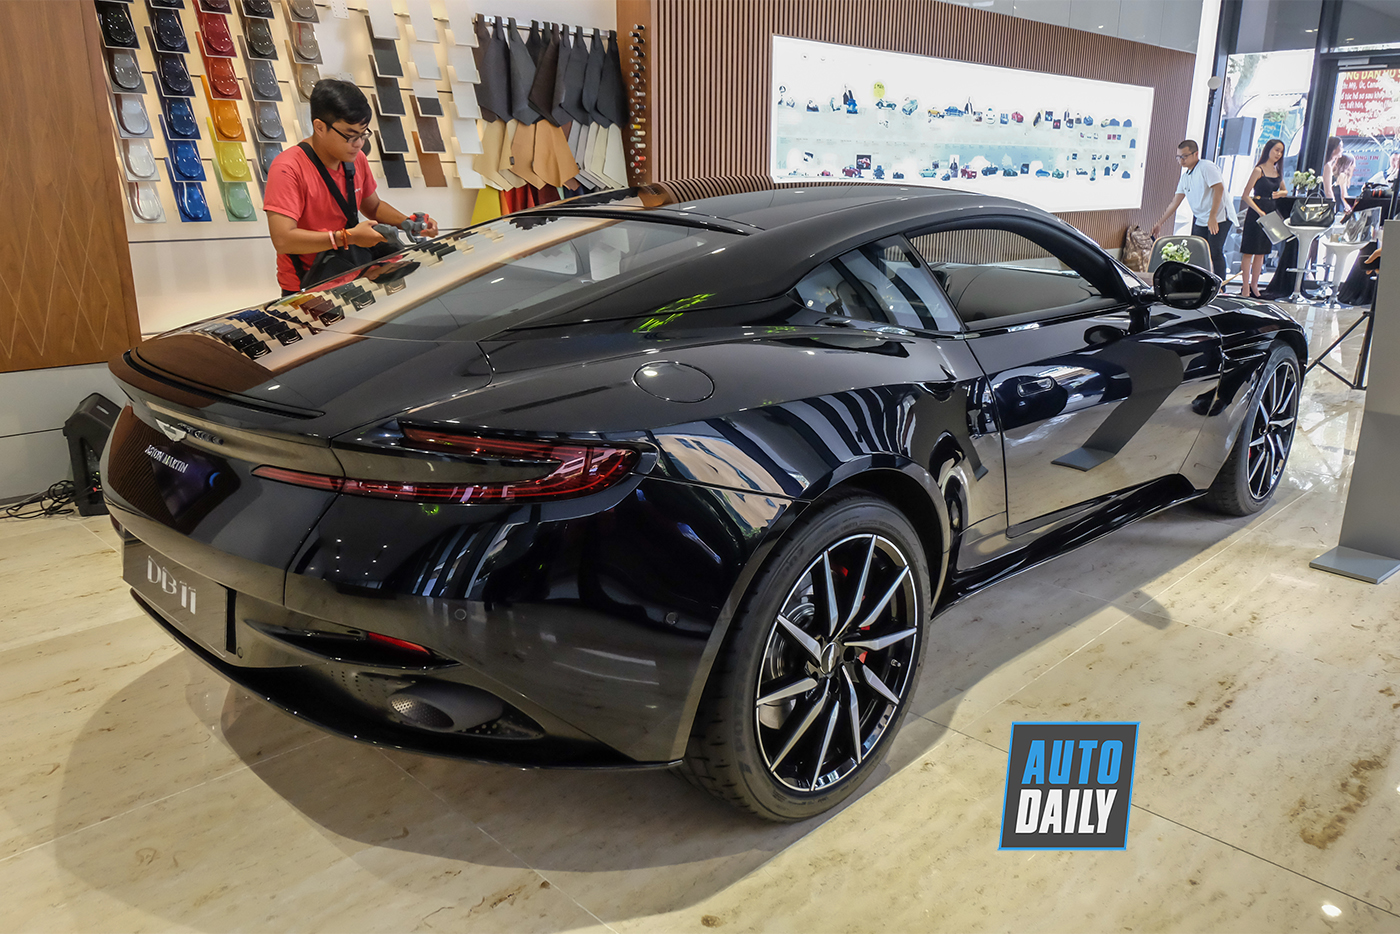 aston-martin-db11-v8-new-36.jpg